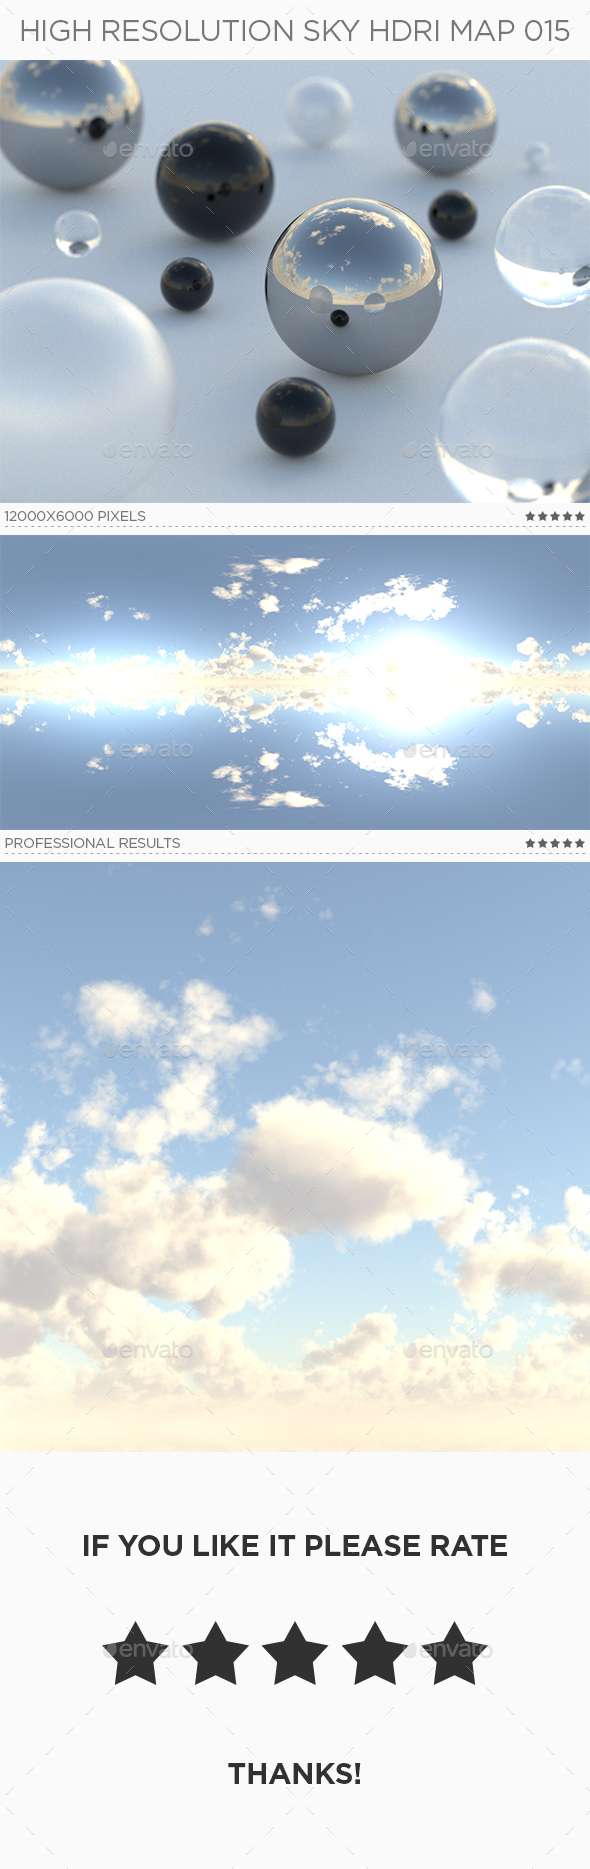 High Resolution Sky HDRi Map 015 - 3DOcean Item for Sale